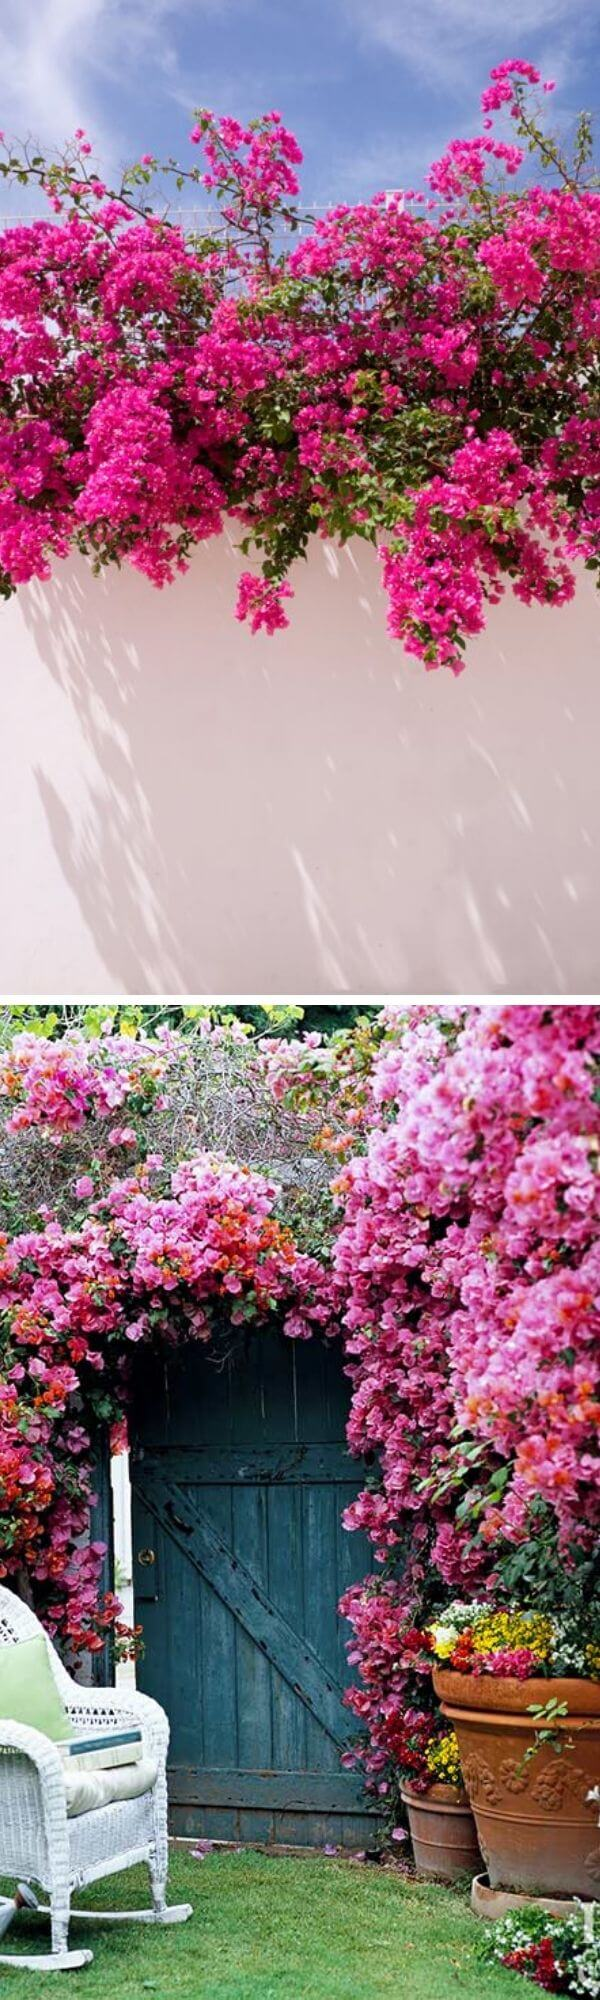 Bougainvillea - Heat and Drought Tolerant Plants for Landscaping